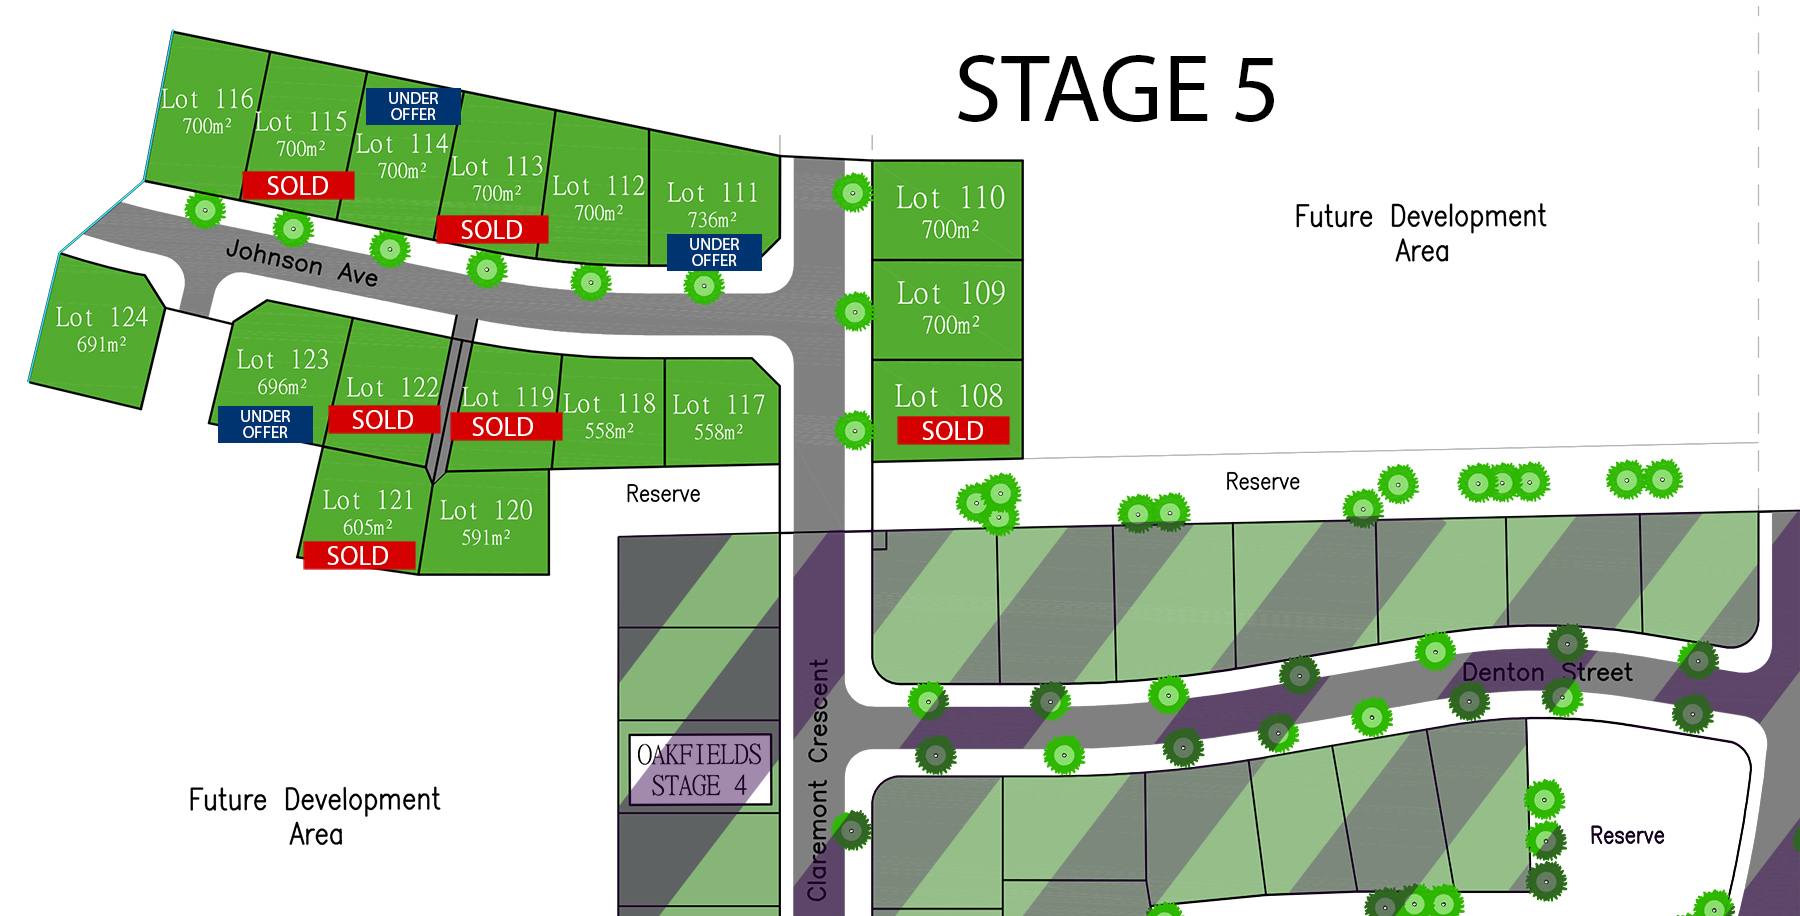 Oakfields Stage 5 Subdivision